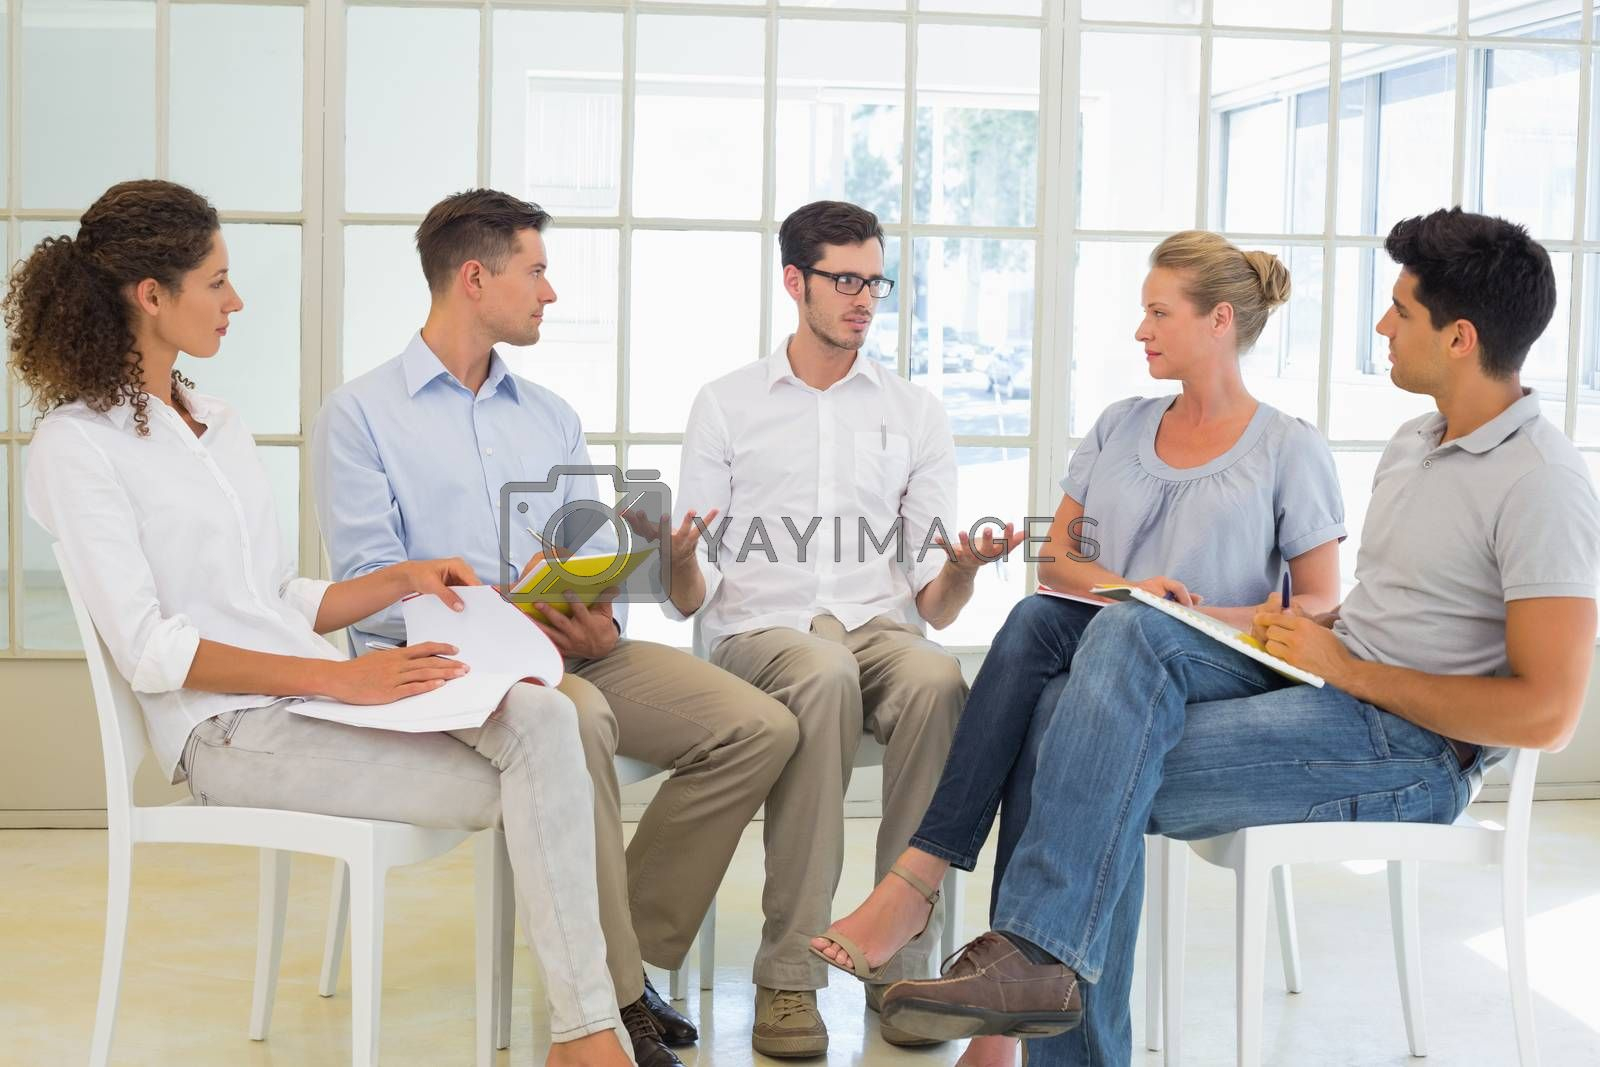 Royalty free image of Casual business team sitting in a circle having a meeting by Wavebreakmedia